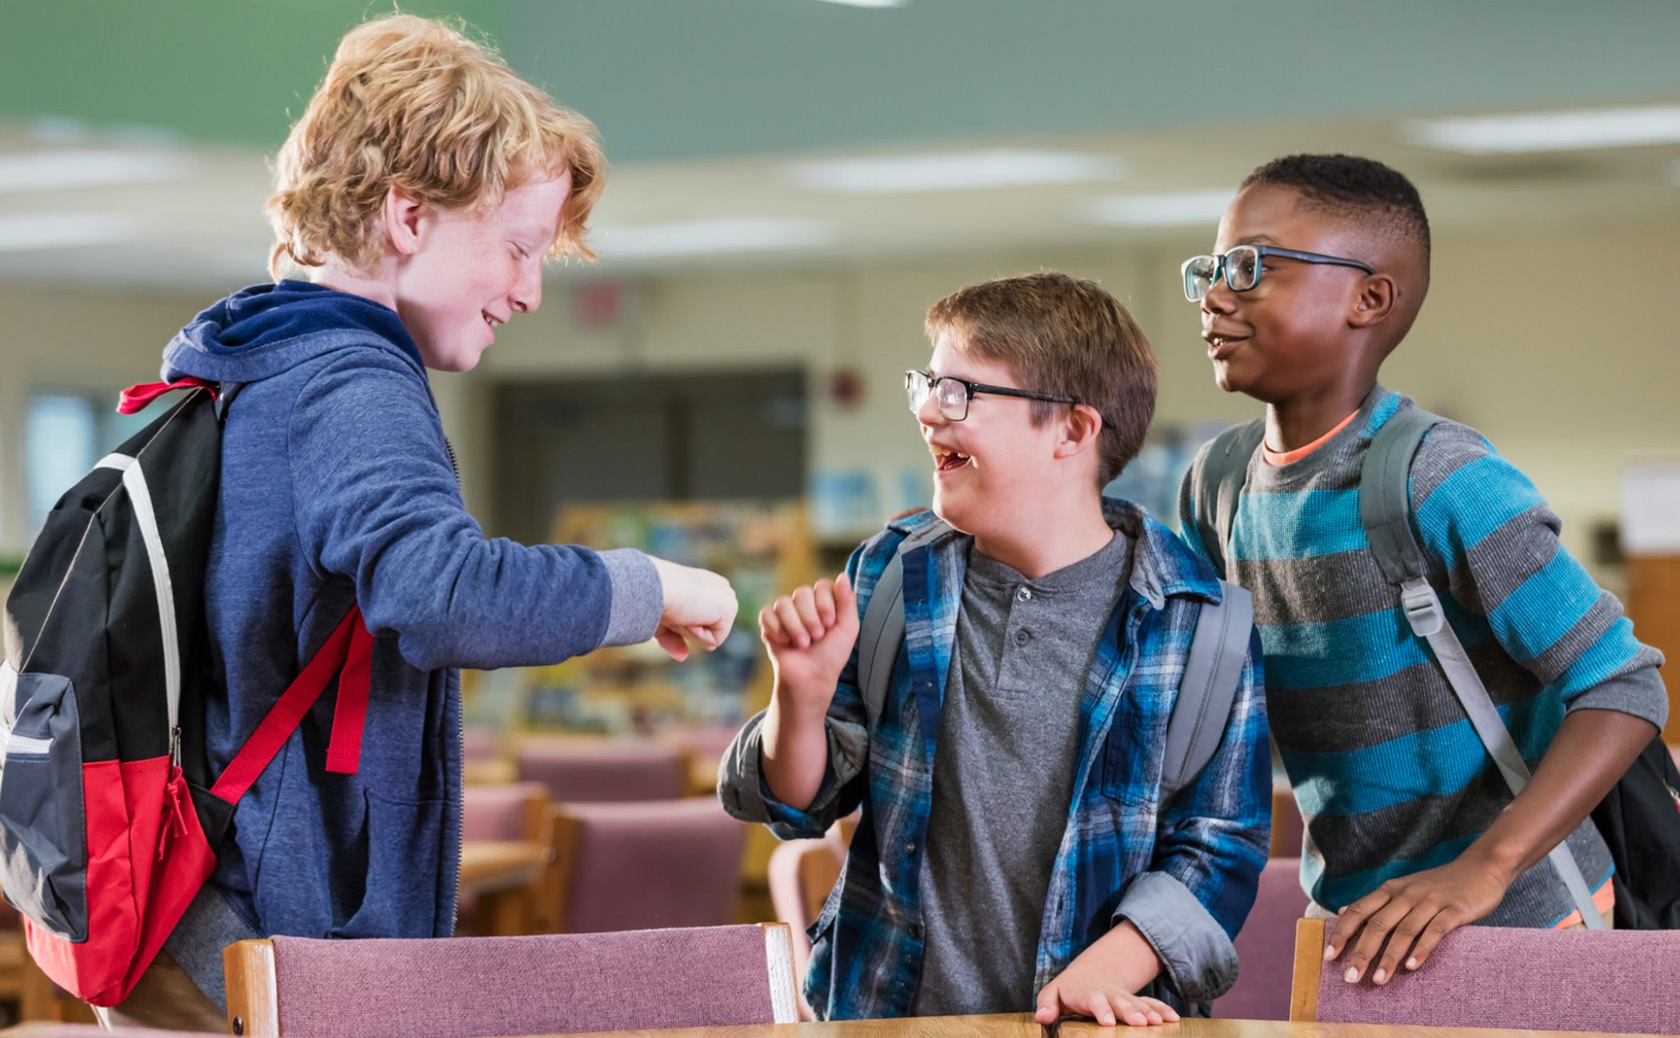 Three male middle-aged students in a cafeteria. Two of the students are fist-bumping. All students are smiling.